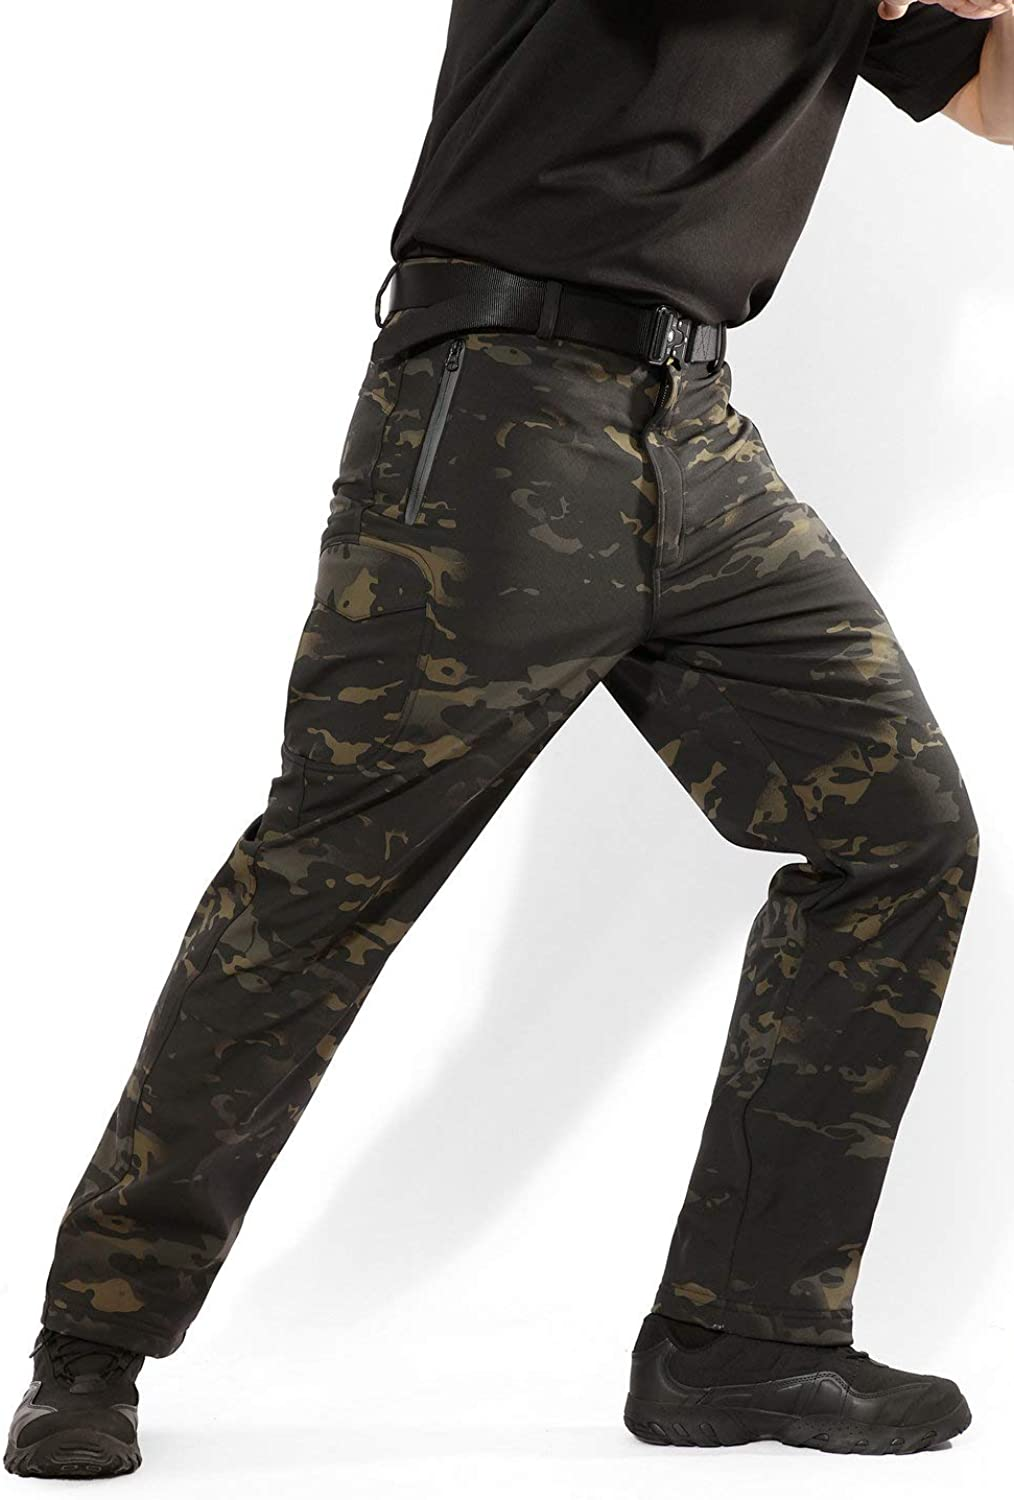 ANTARCTICA Mens Winter Fleece Lined Softshell Tactical Pants for Ski Snowboard with Multi Pockets